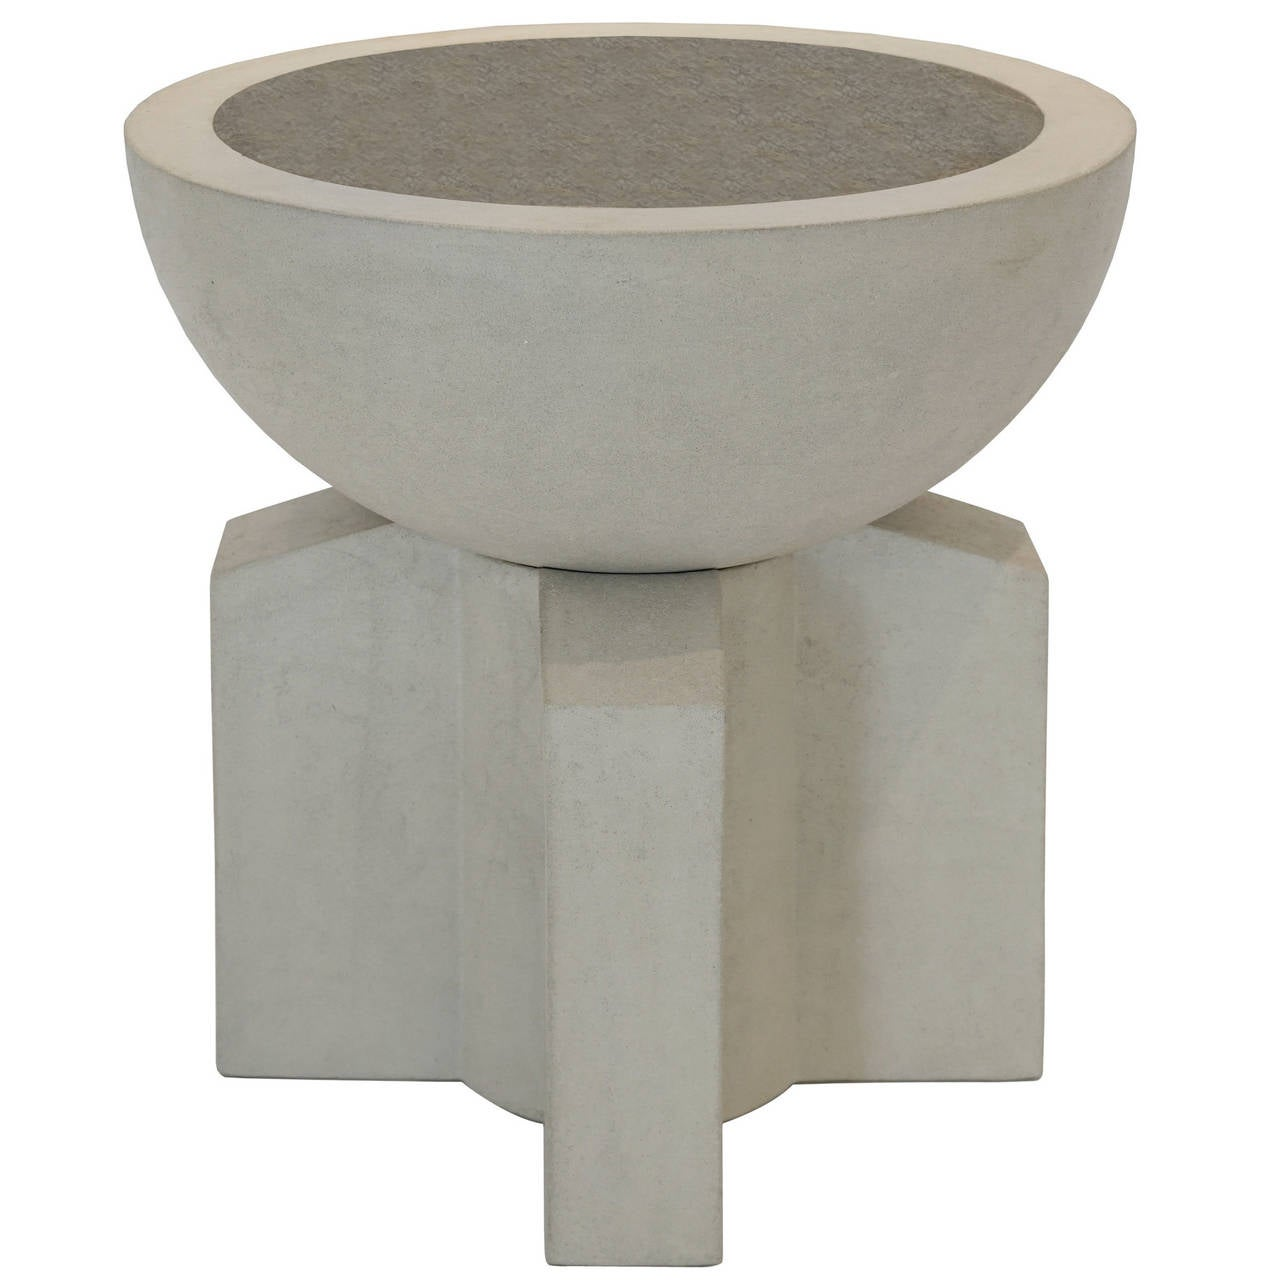 Californian i cast concrete planter for sale at 1stdibs - Casting concrete planters ...